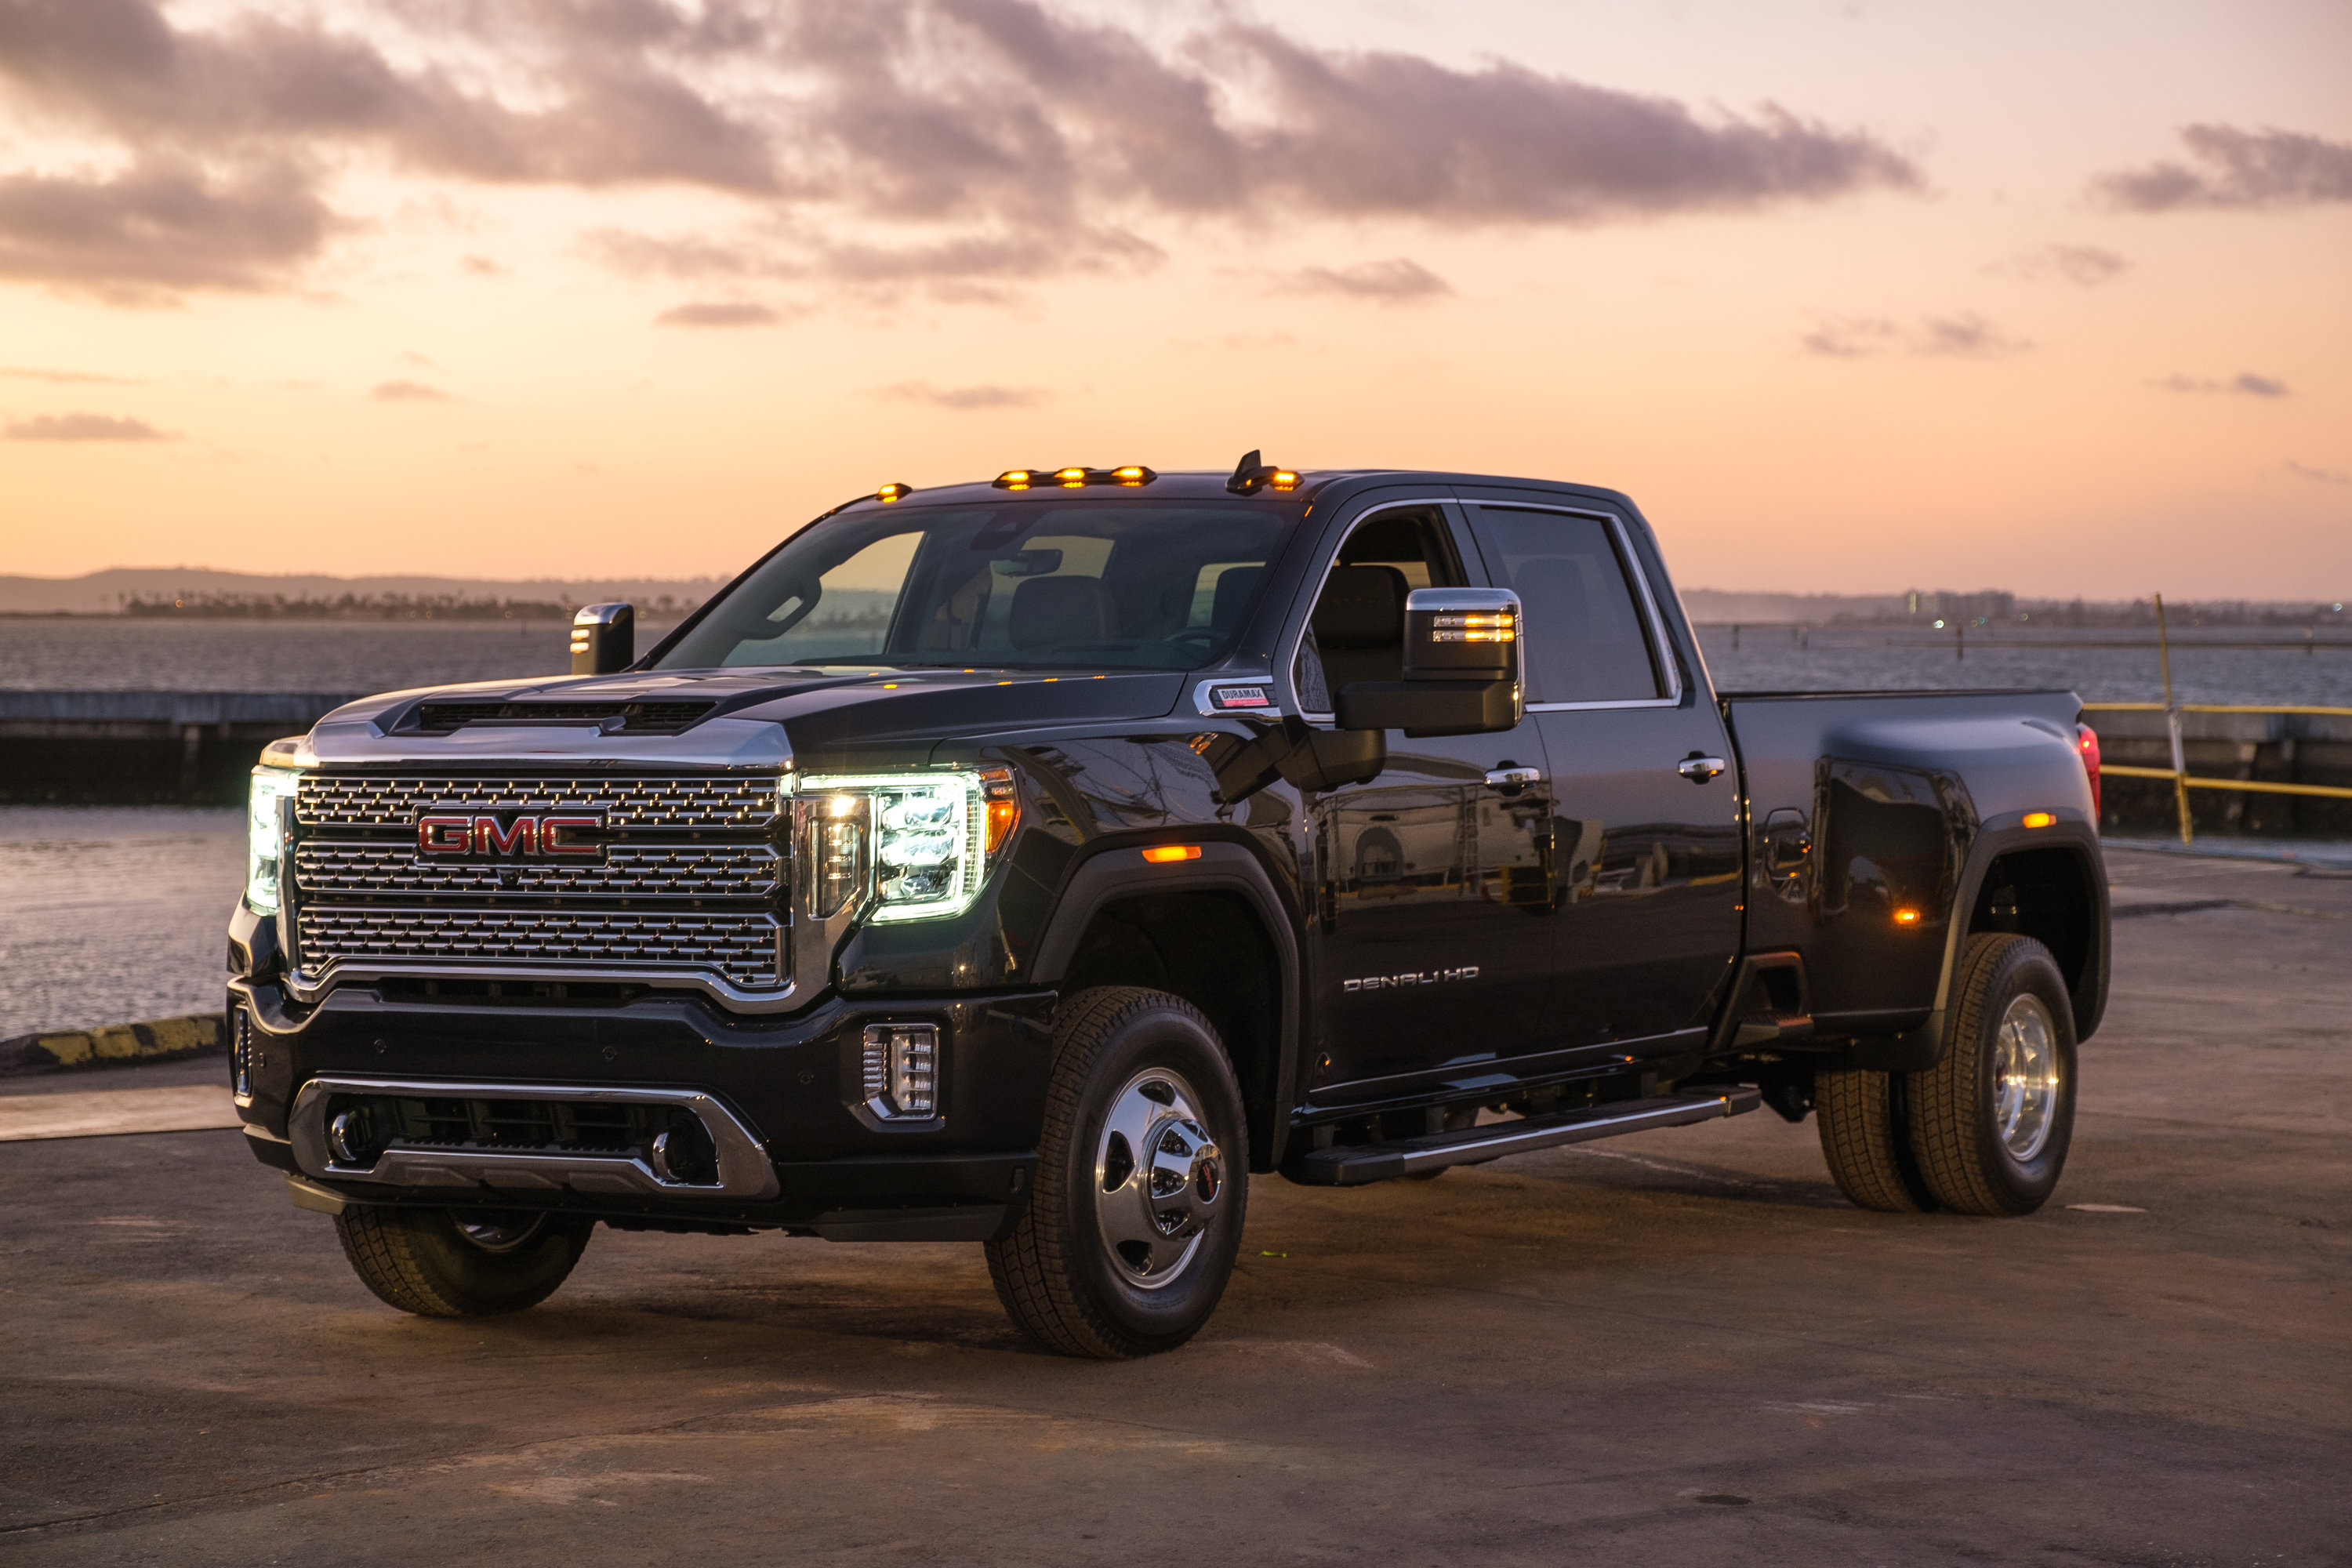 32 Best 2020 GMC Sierra Images